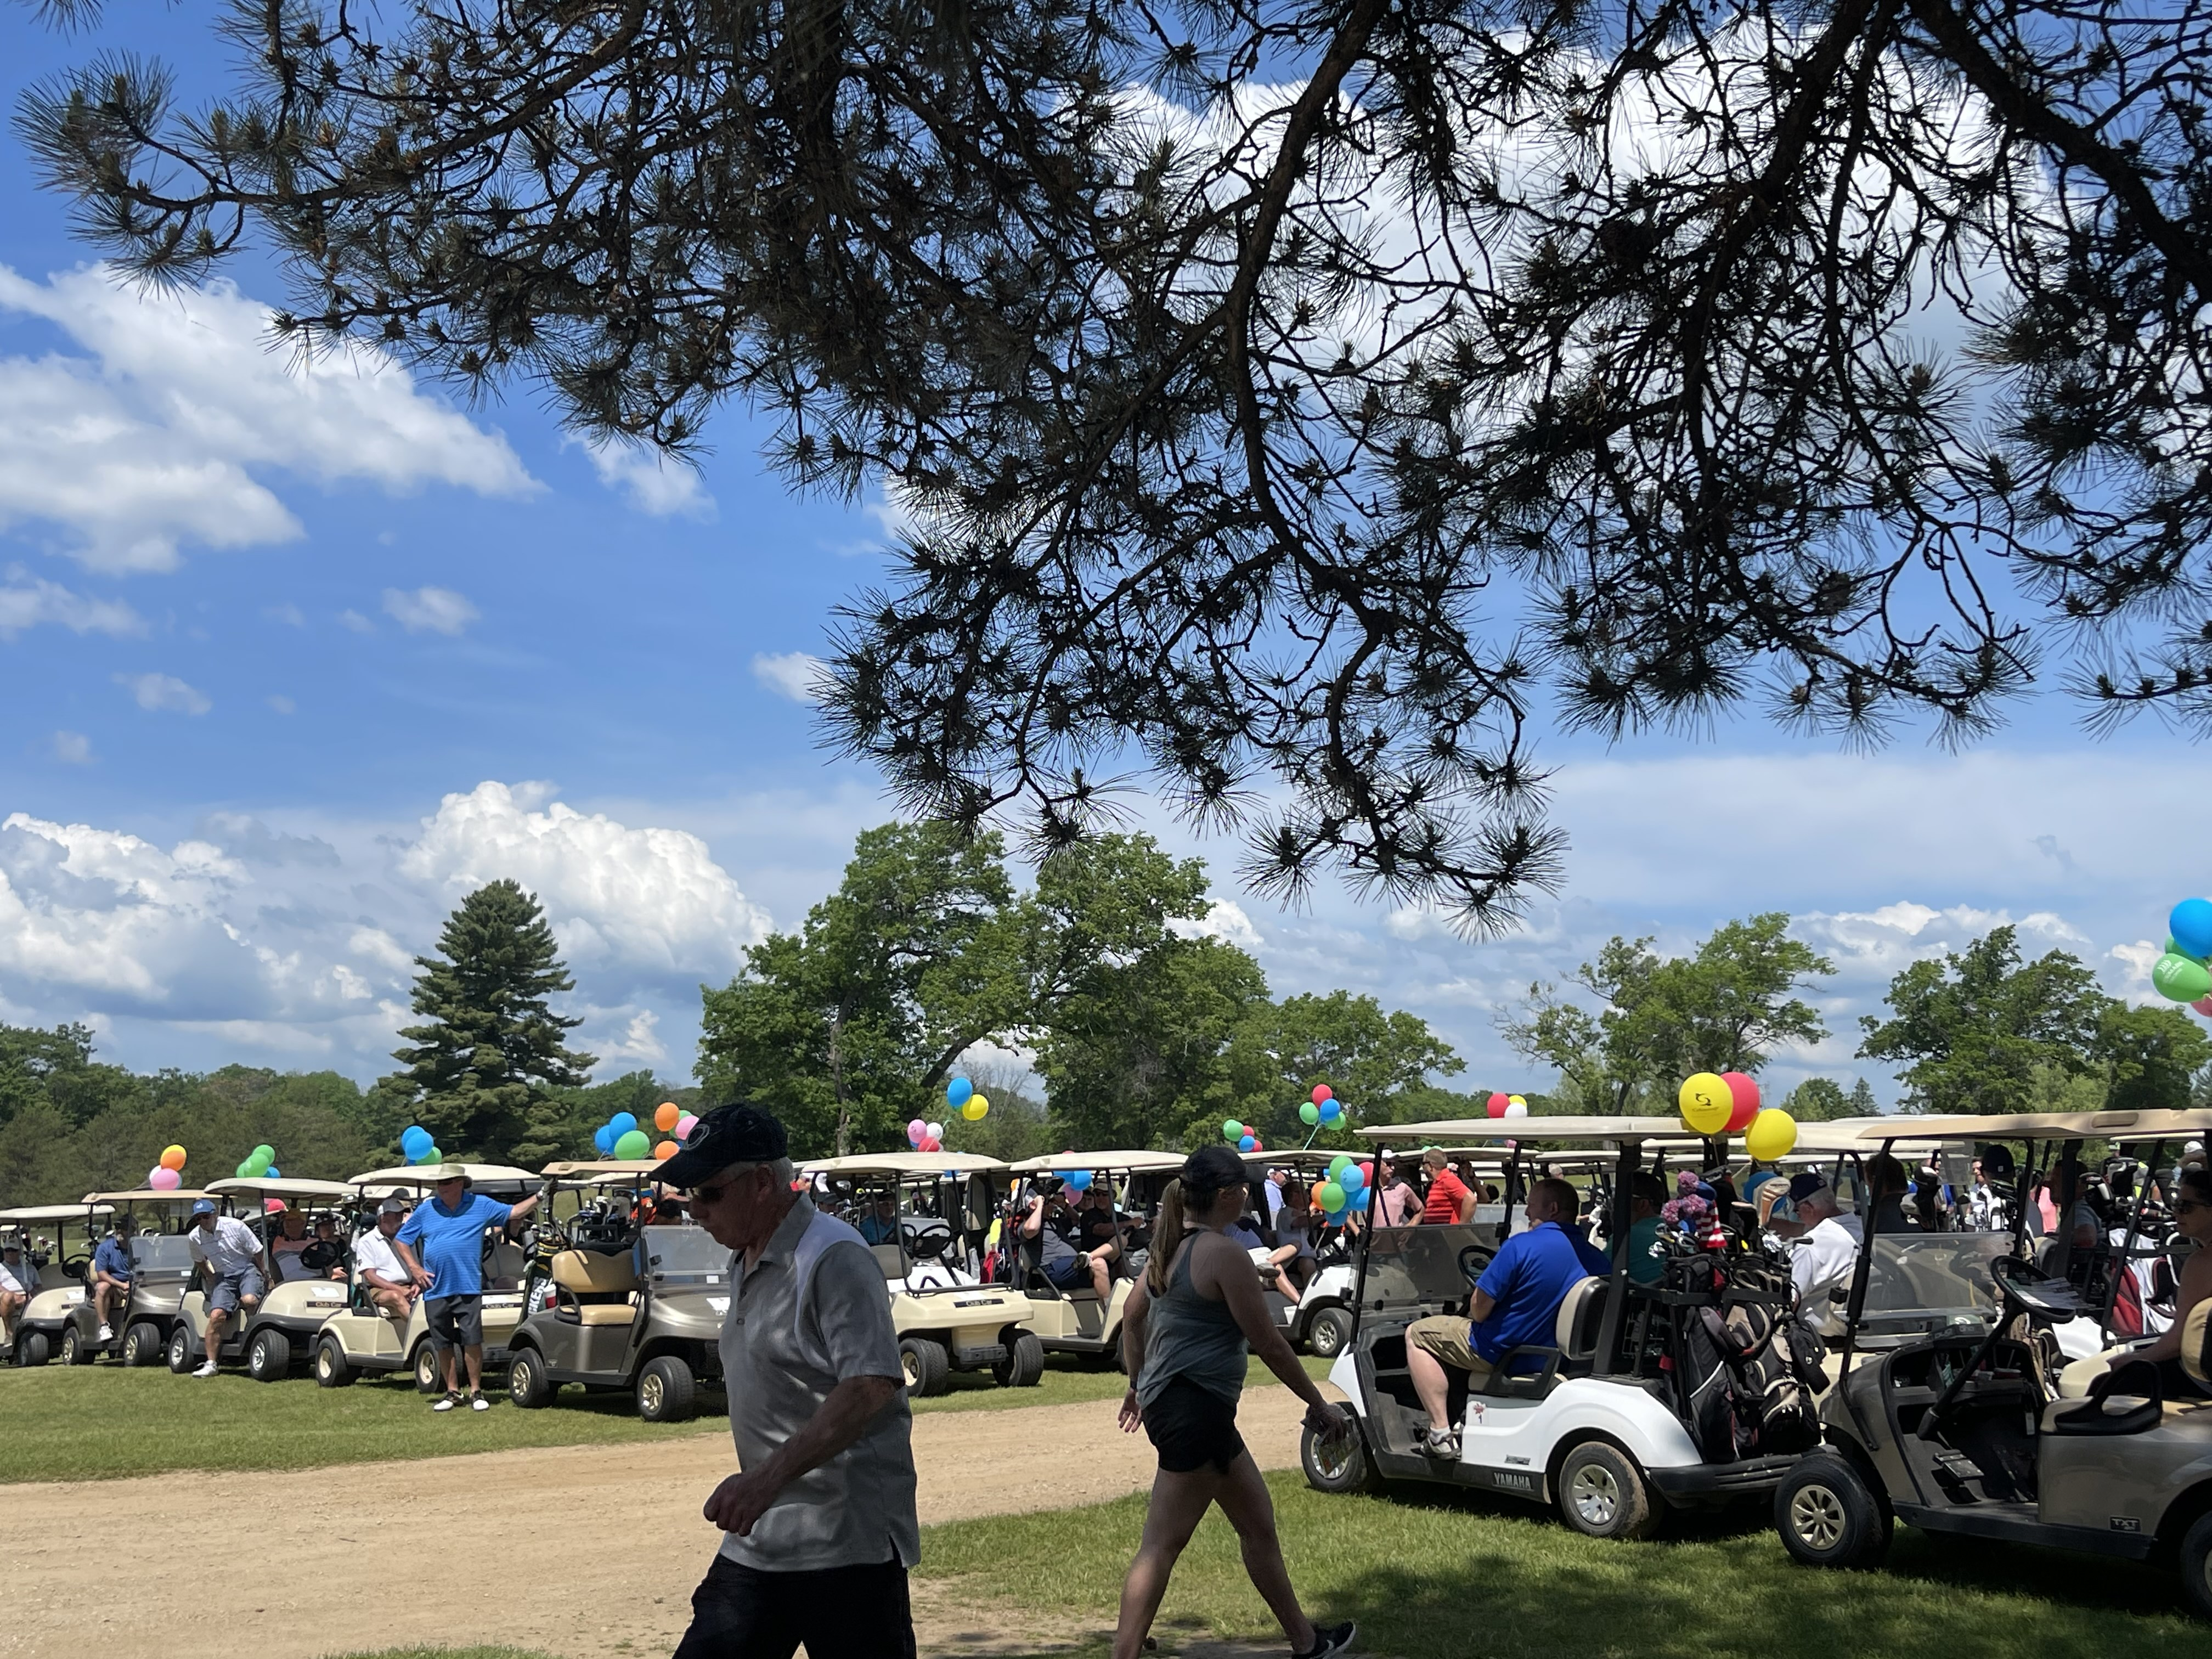 Sunny skies and temperatures exceeding 90 degrees, golfers prepare to tee off in the annual Shawano Area Waterways Management Golf Outing June 8 at Shawano Lake Golf Course, Shawano.Greg Mellis | NEW Media